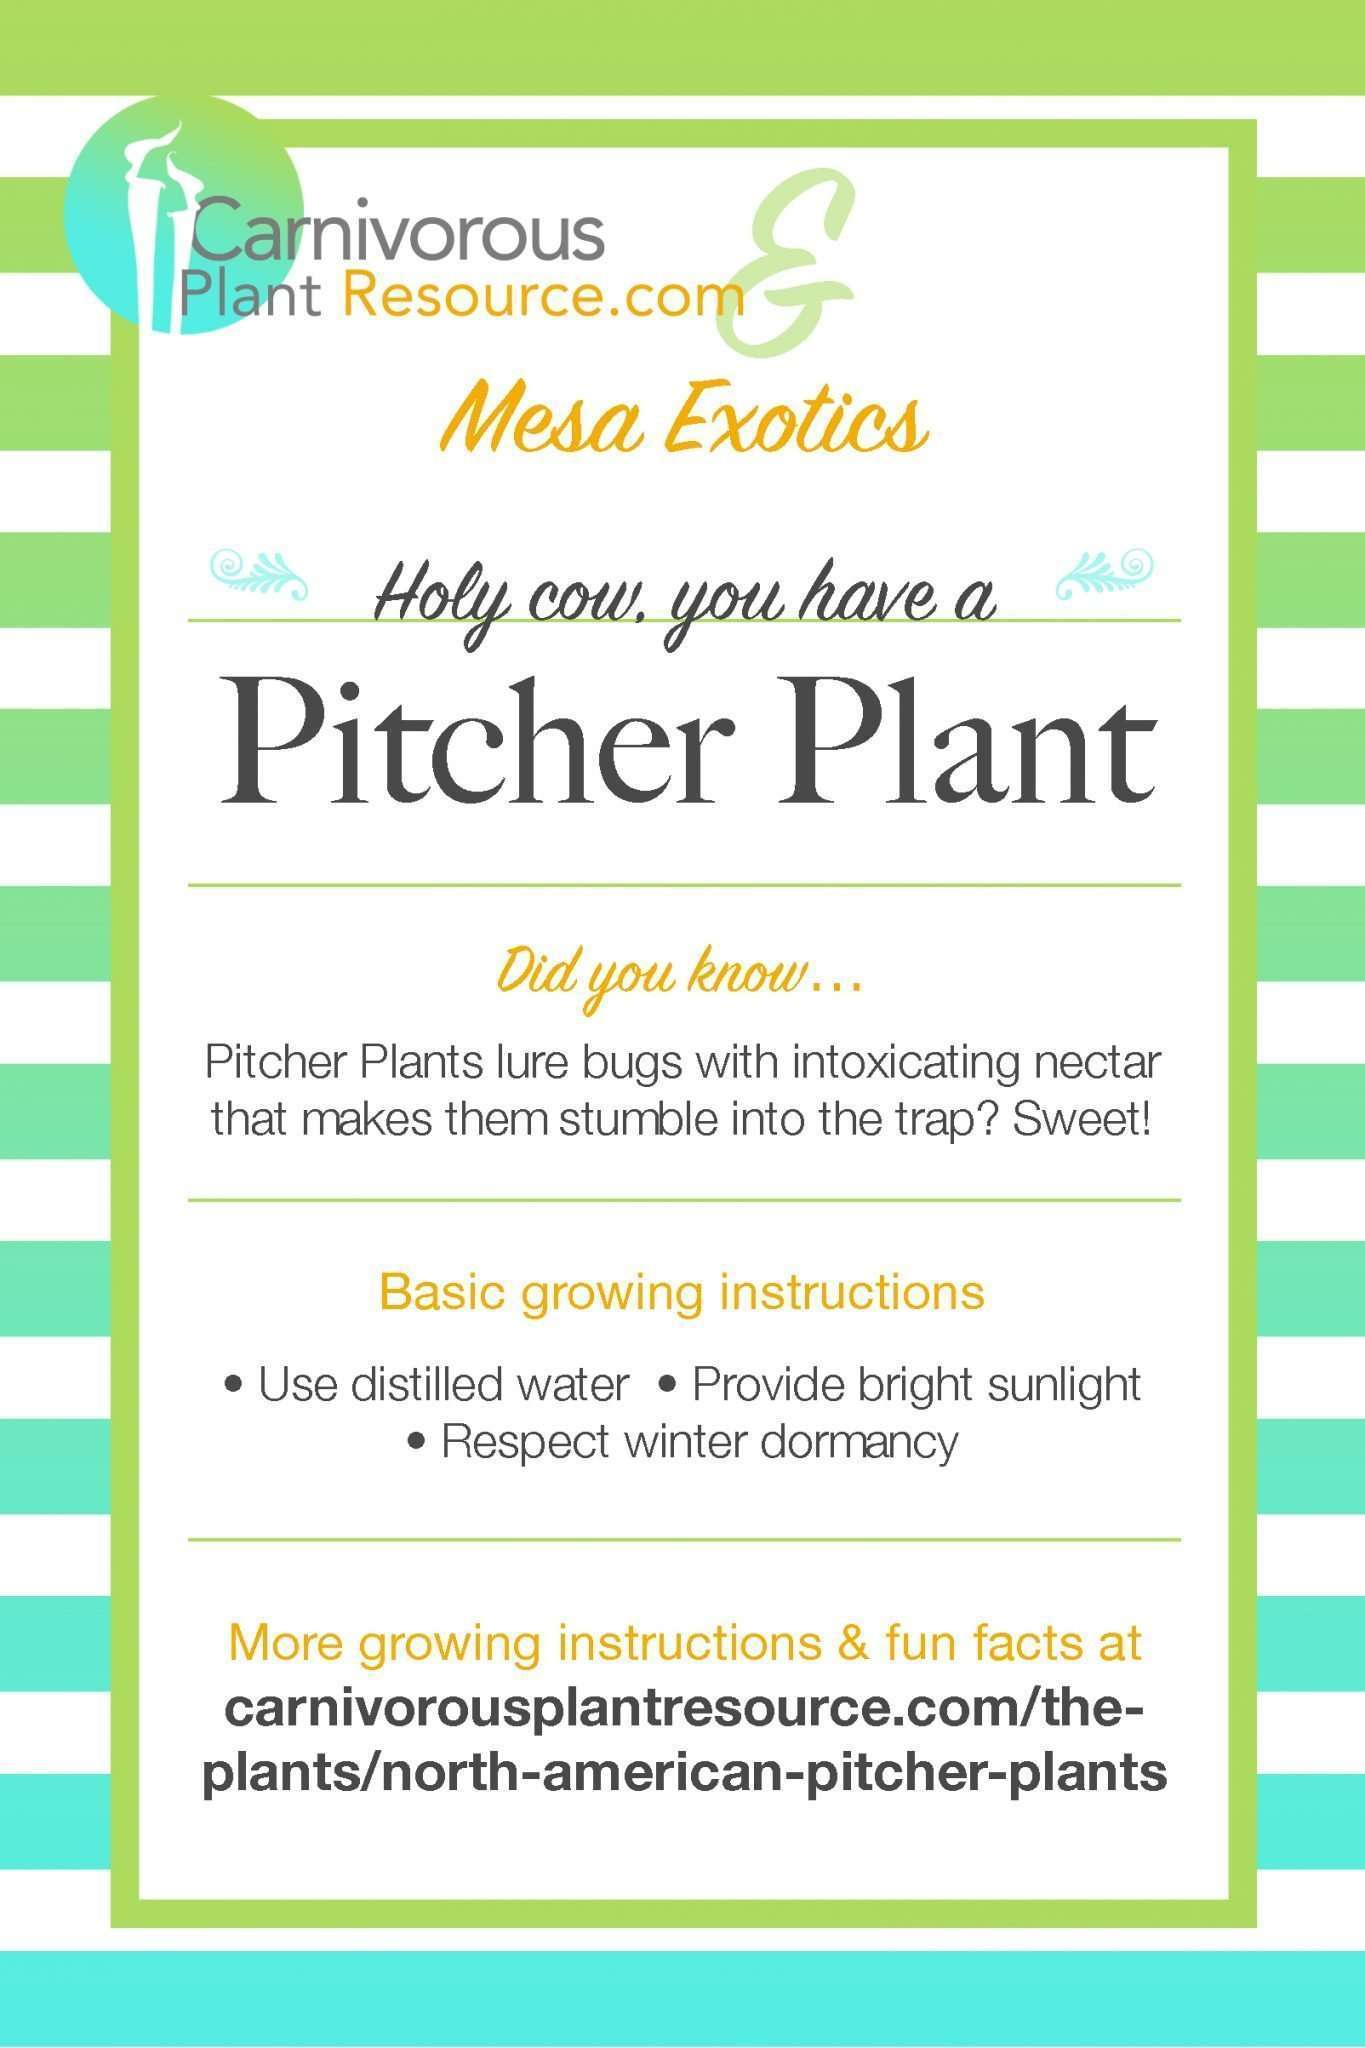 CPR and Mesa Exotics Pitcher Plant flier.jpg